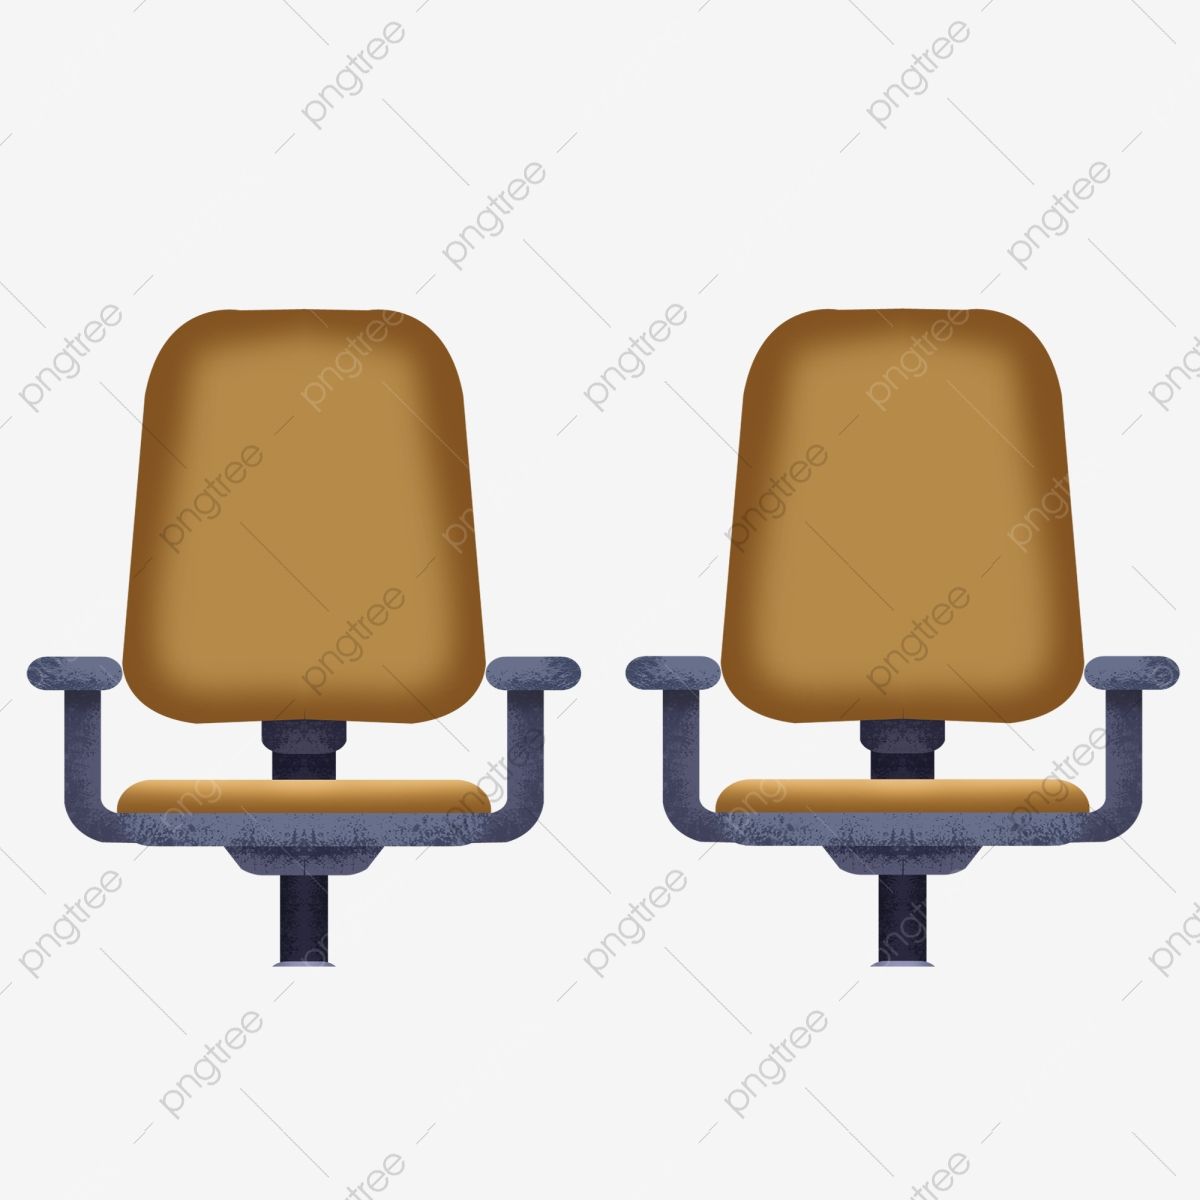 Two Office Chairs Chair Office Seat Png Transparent Clipart Image And Psd File For Free Download